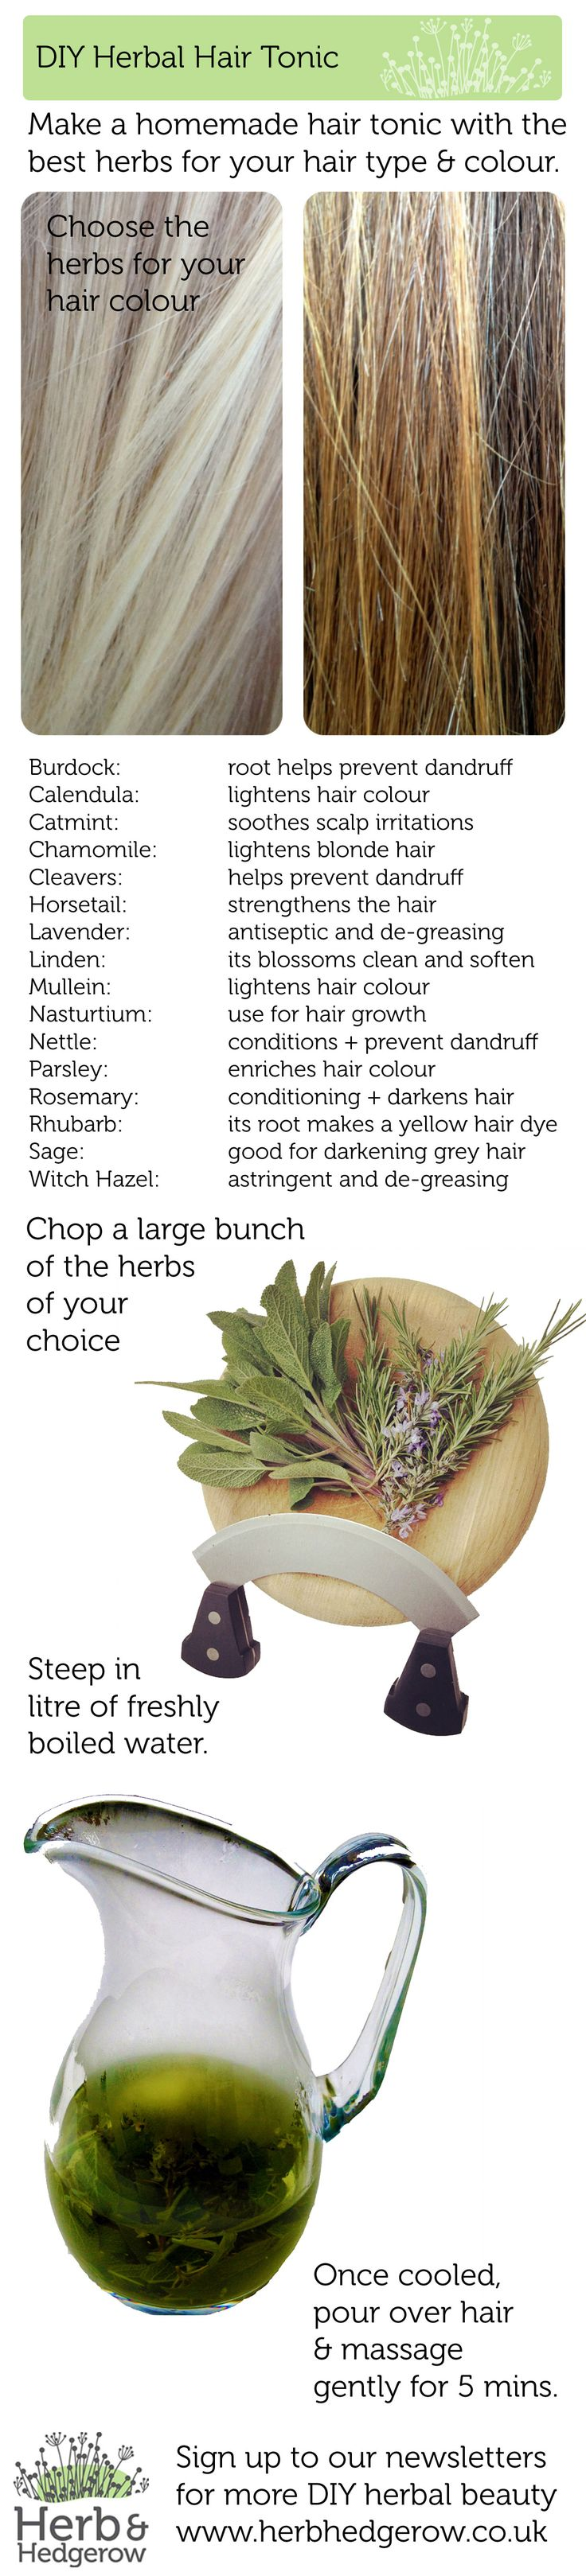 Herbal Hair Tonic - Make your own homemade DIY beauty recipes and start with this lovely yet simple recipe to use herbs for your hair.